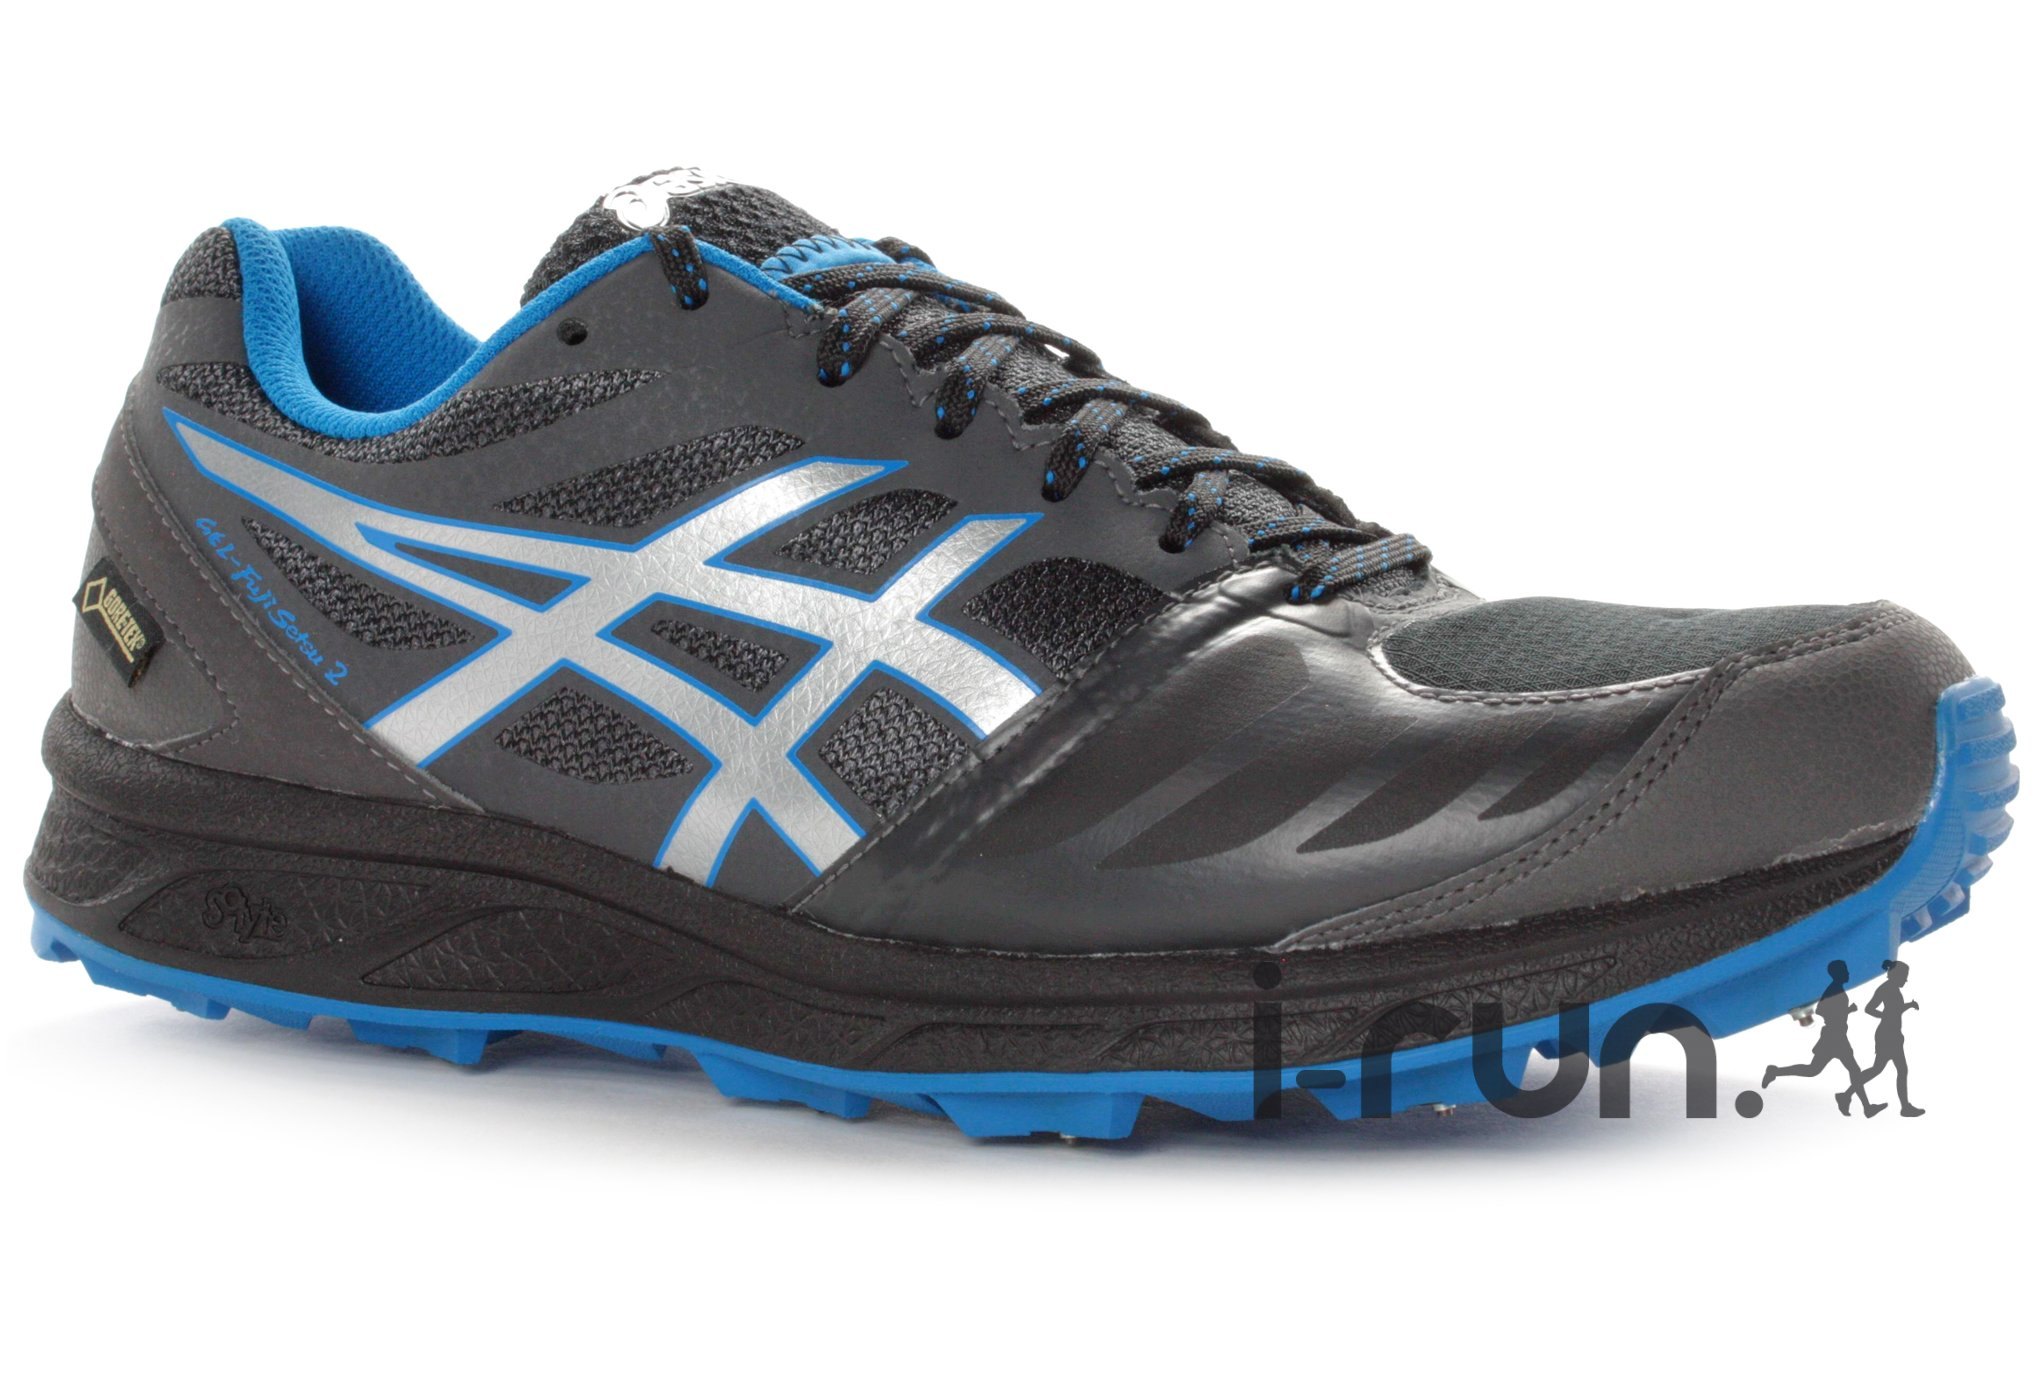 chaussures asics gore tex homme. Black Bedroom Furniture Sets. Home Design Ideas